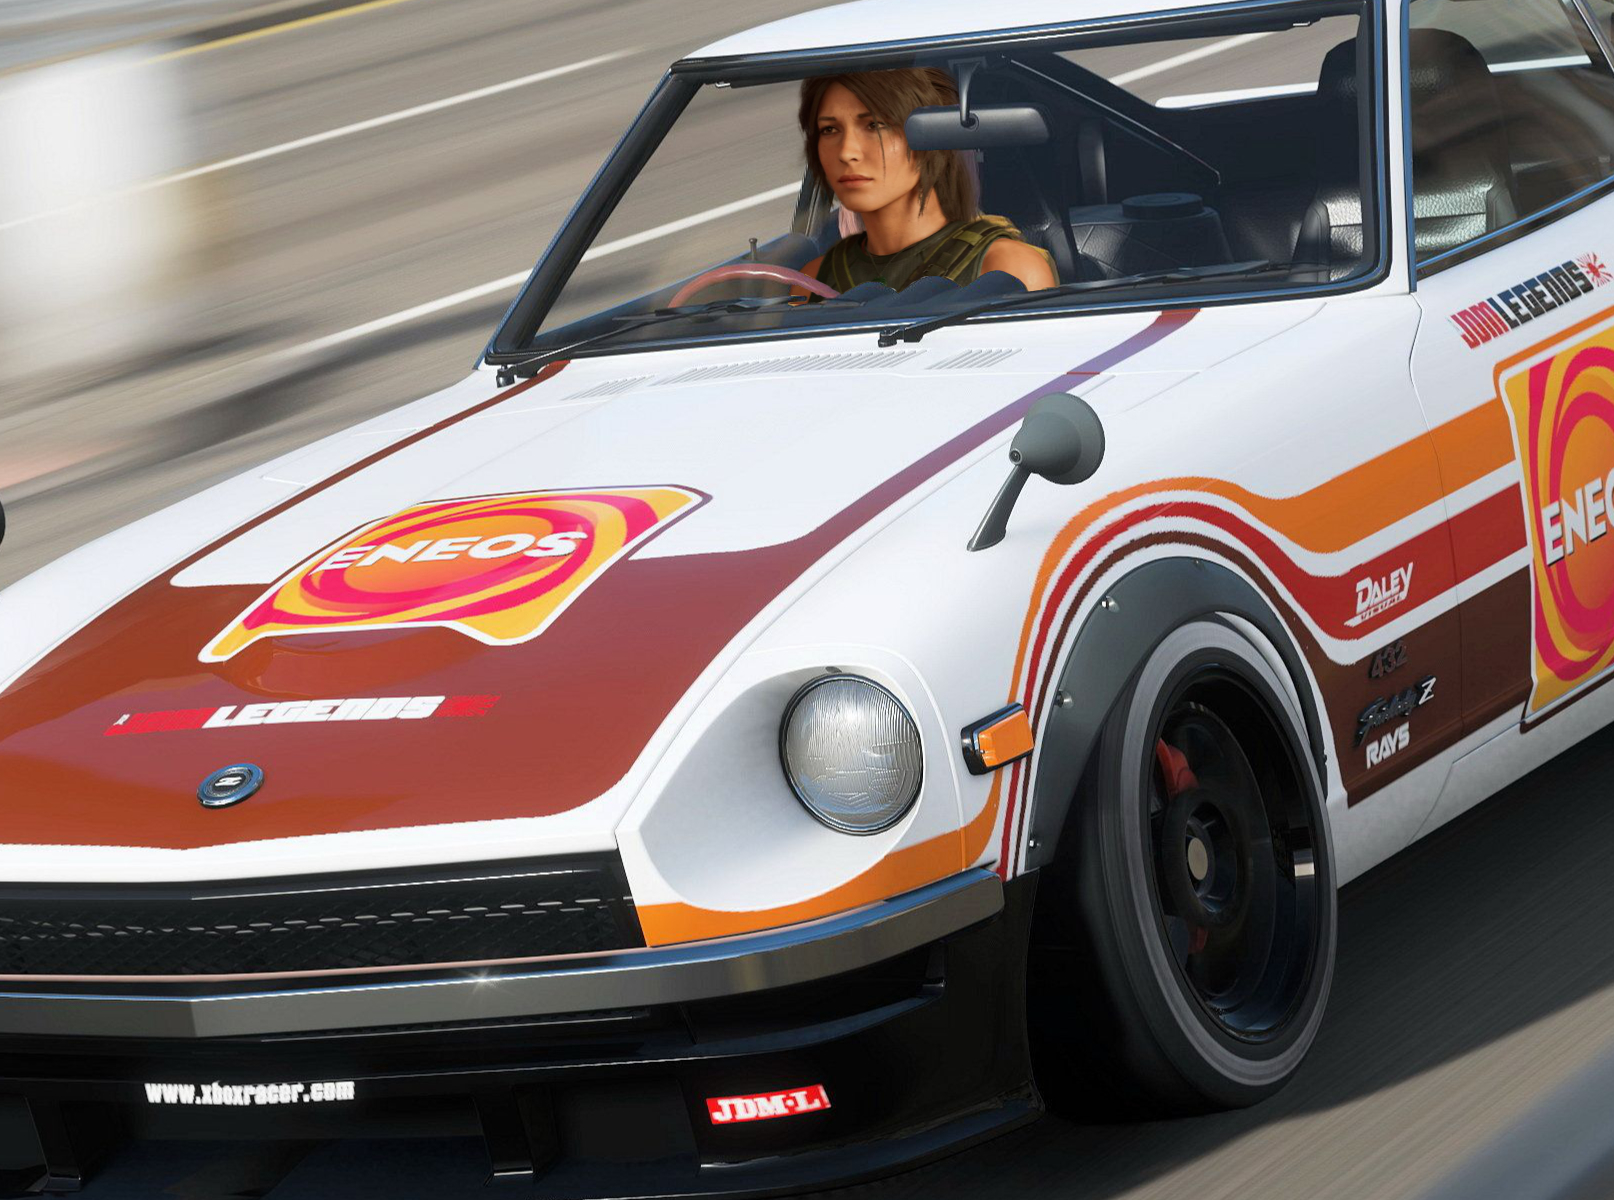 63 – Forza Horizon 4 / Shadow of the Tomb Raider